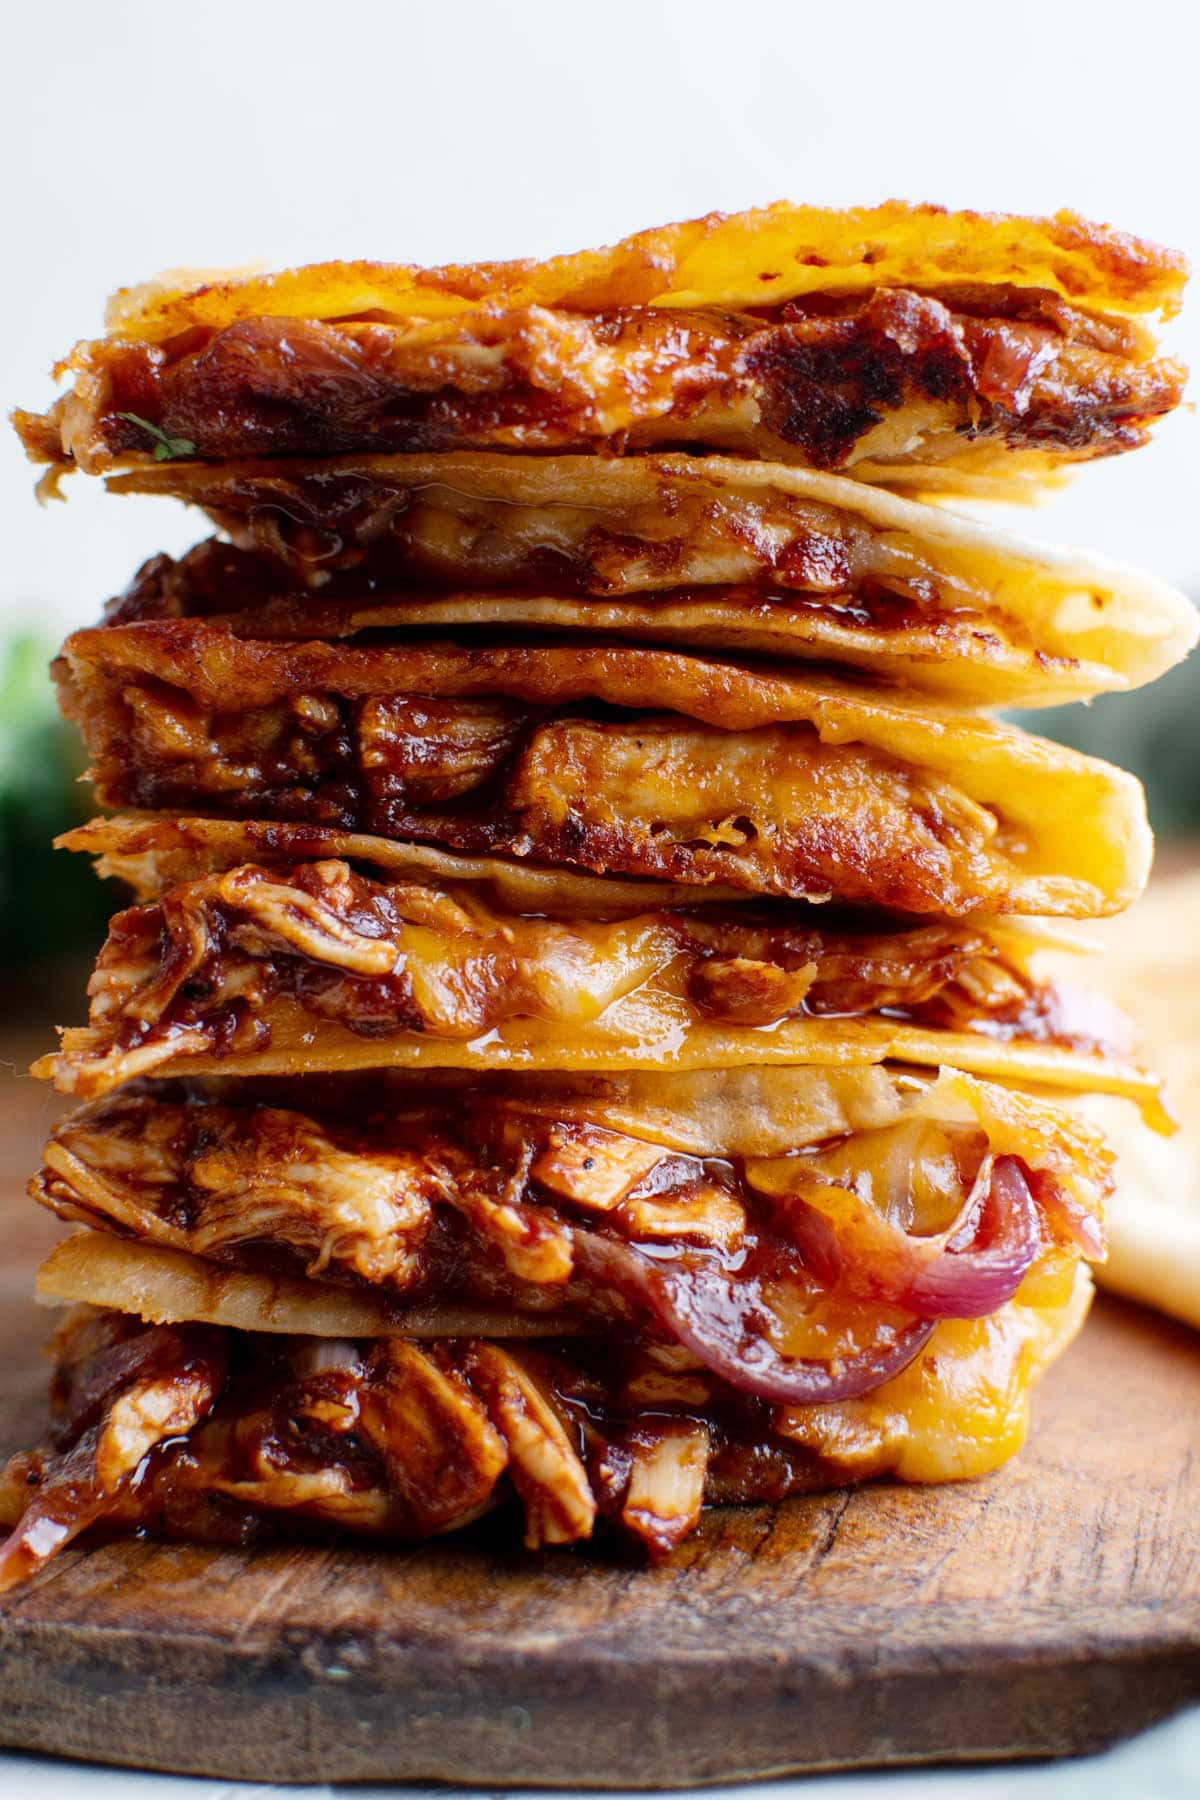 stack of chicken quesadillas on wood cutting board